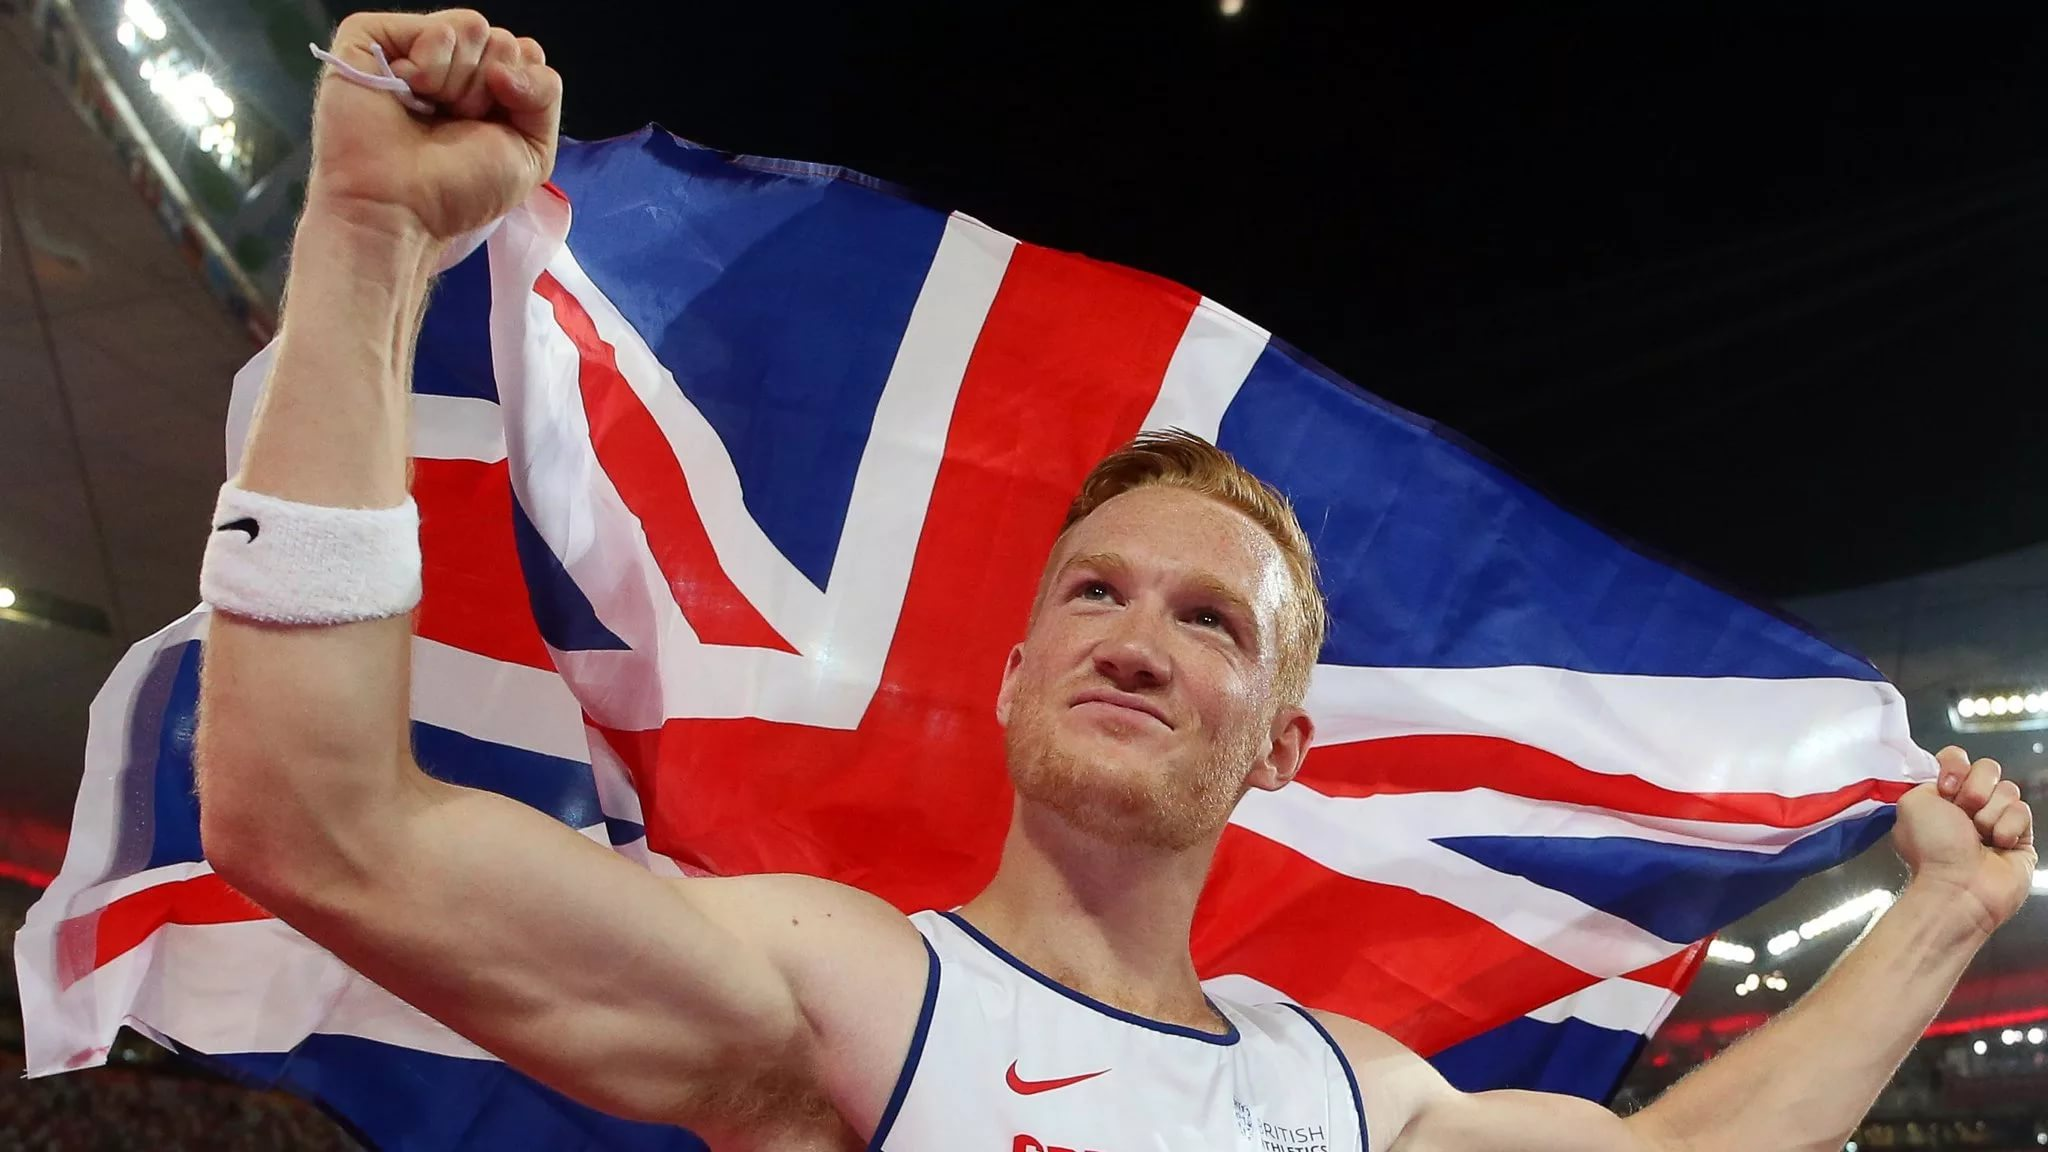 2048x1152 - Greg Rutherford Wallpapers 25